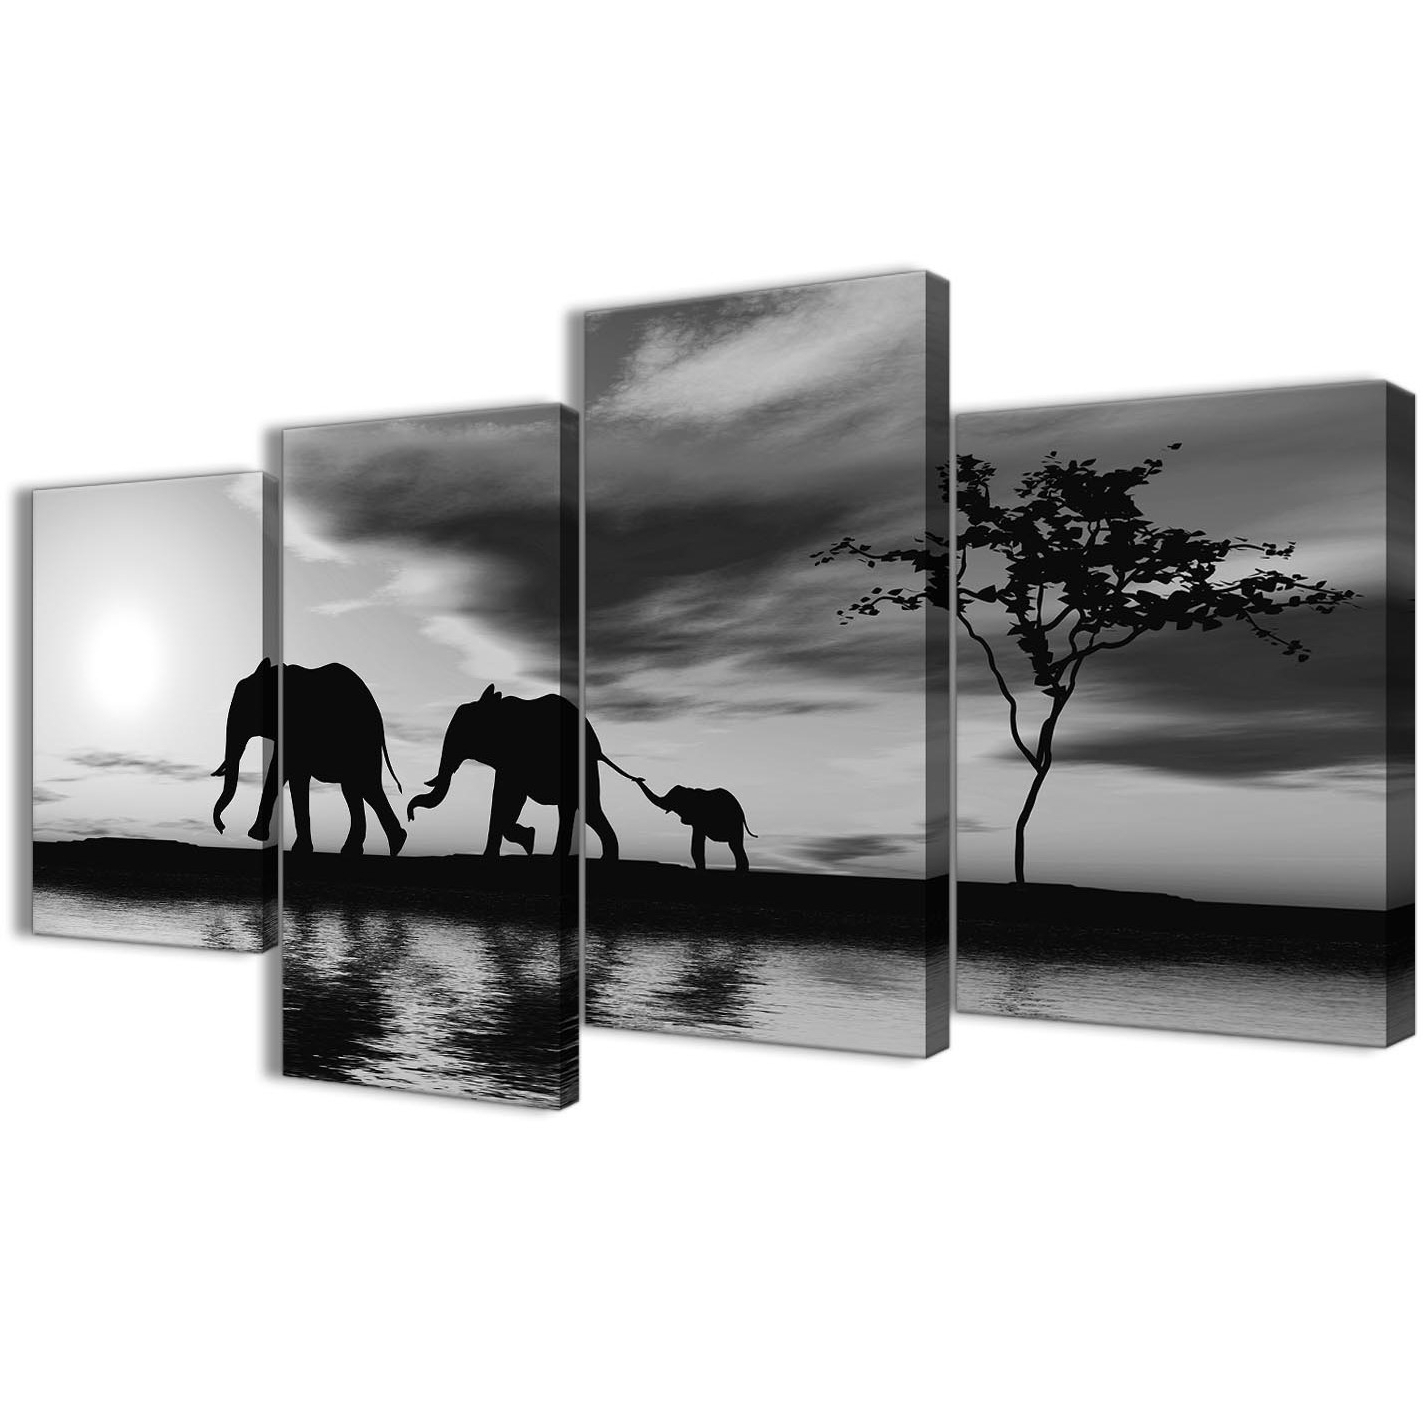 Large Black White African Sunset Elephants Canvas Wall Art Print In Fashionable Black And White Canvas Wall Art (View 11 of 15)